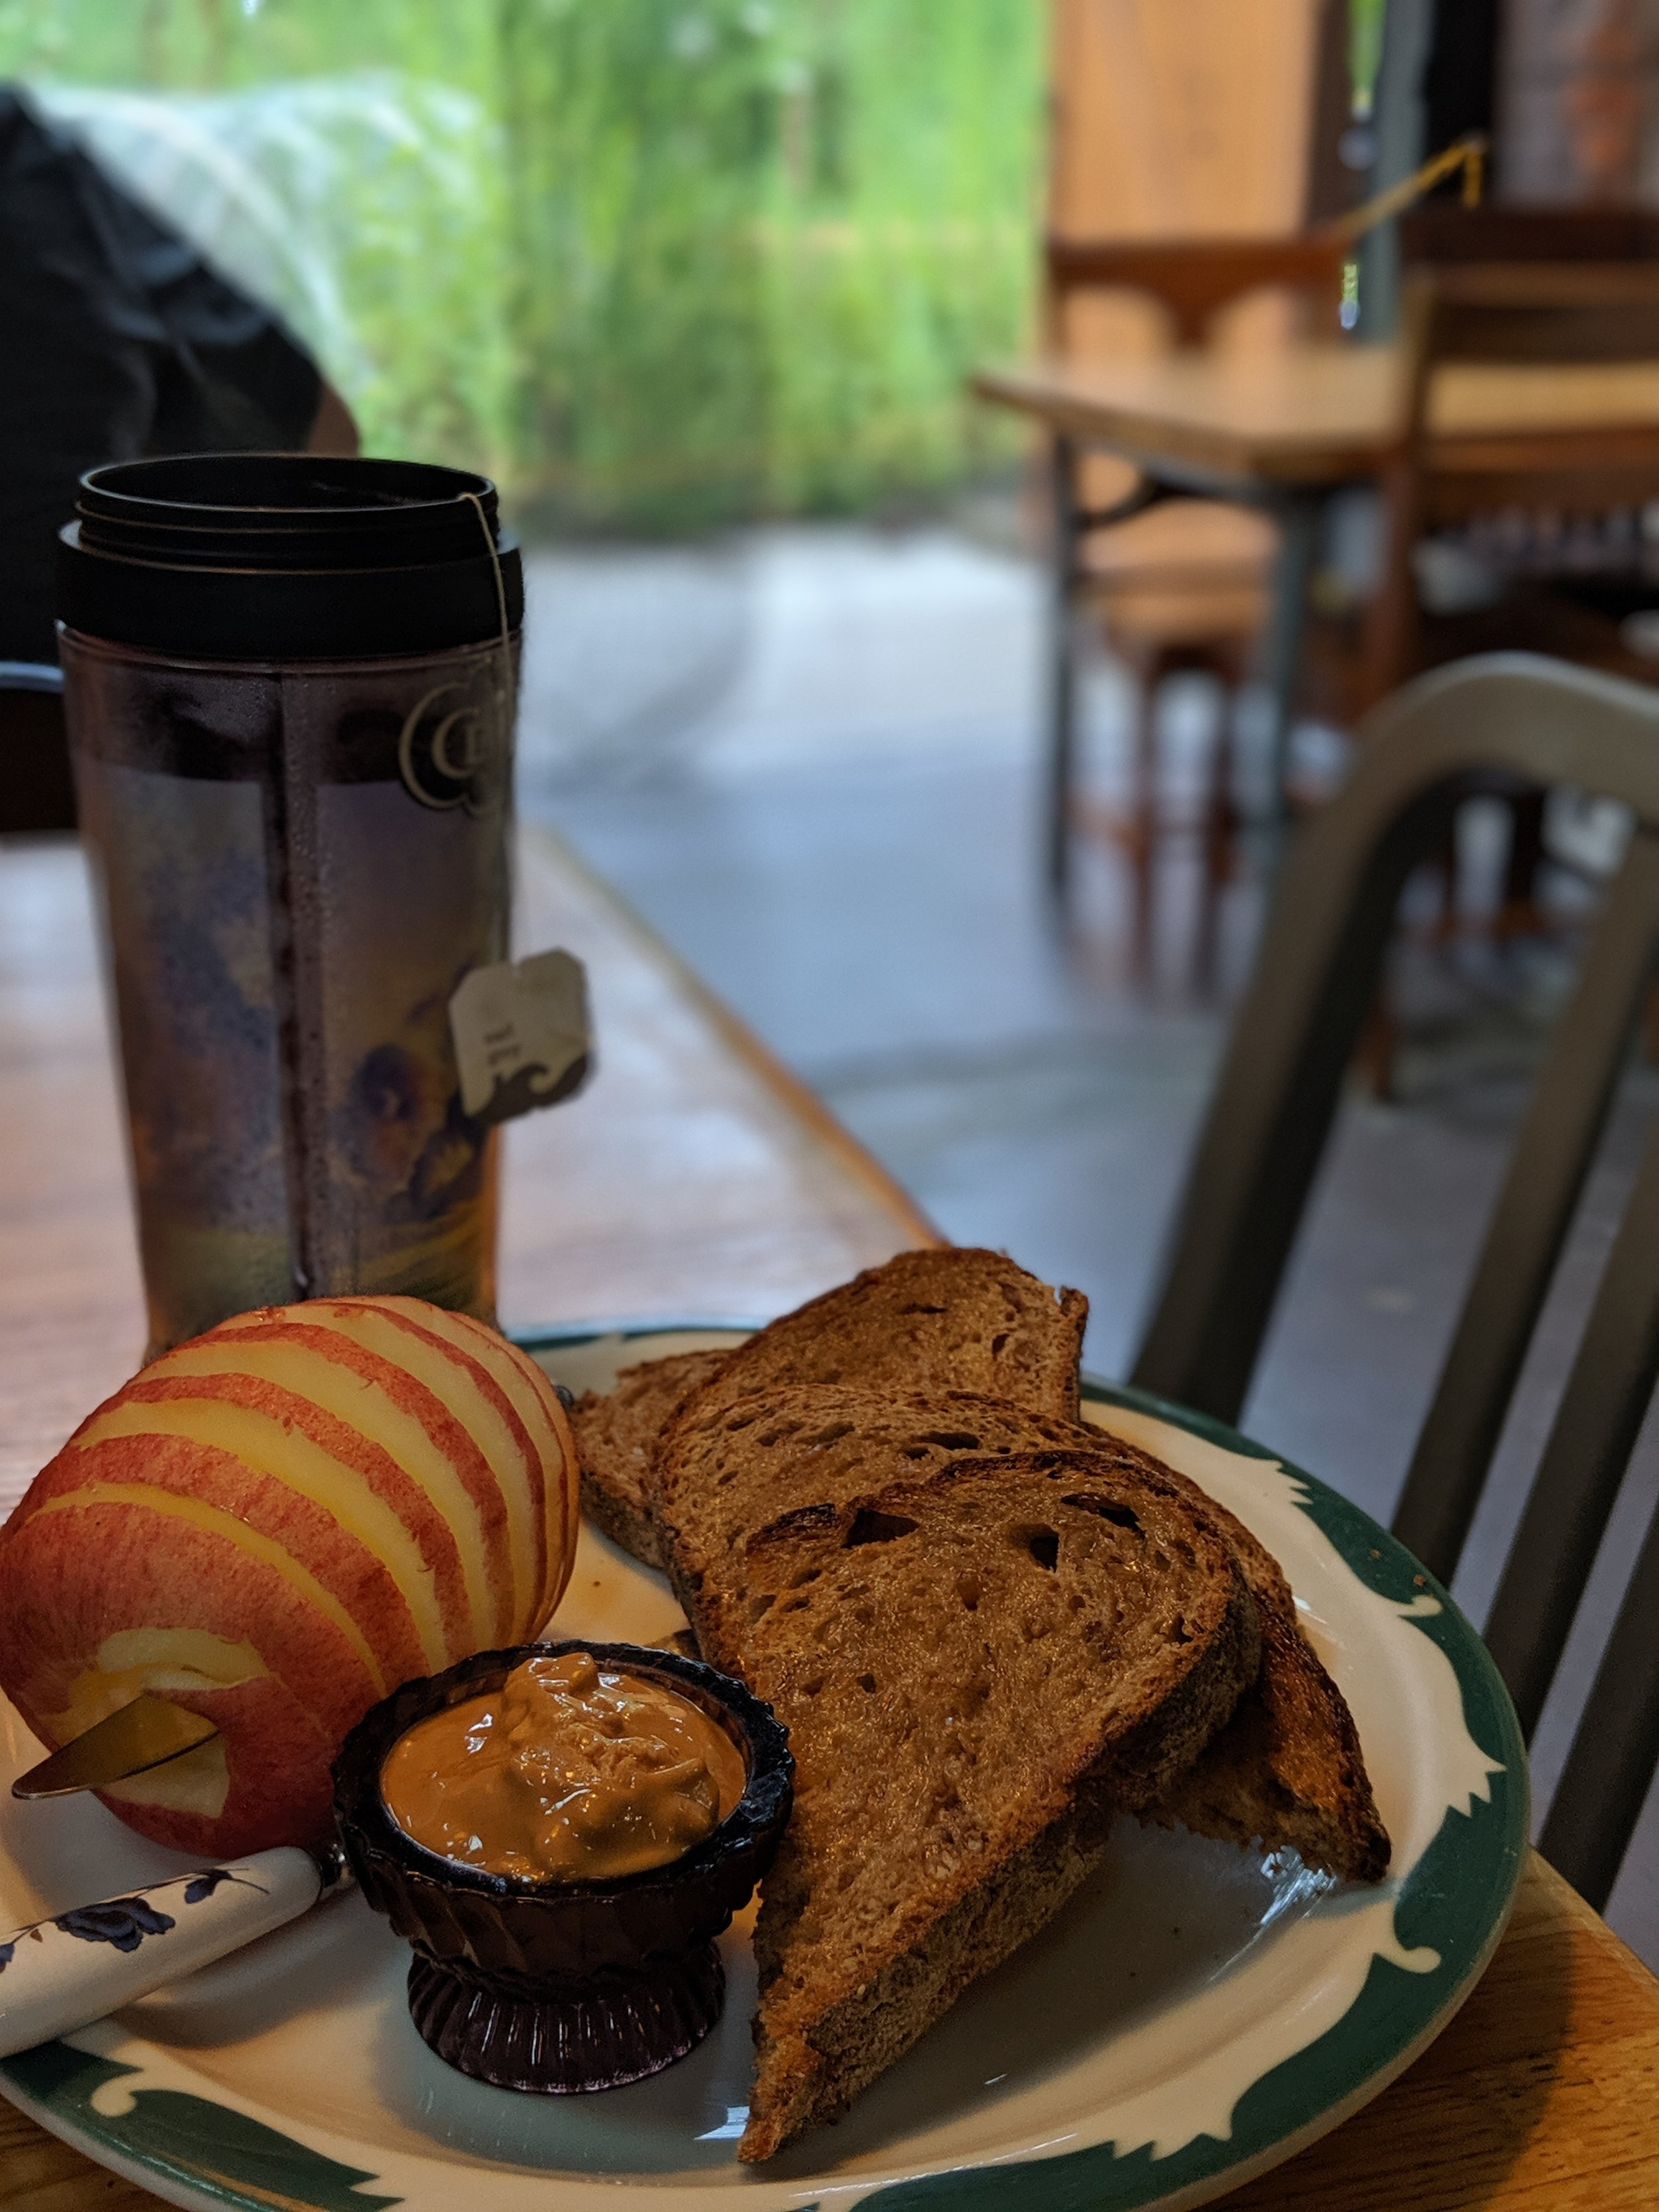 The Build-Your-Own Toast at  Five Point's Bakery  means you get their bread topped your way.